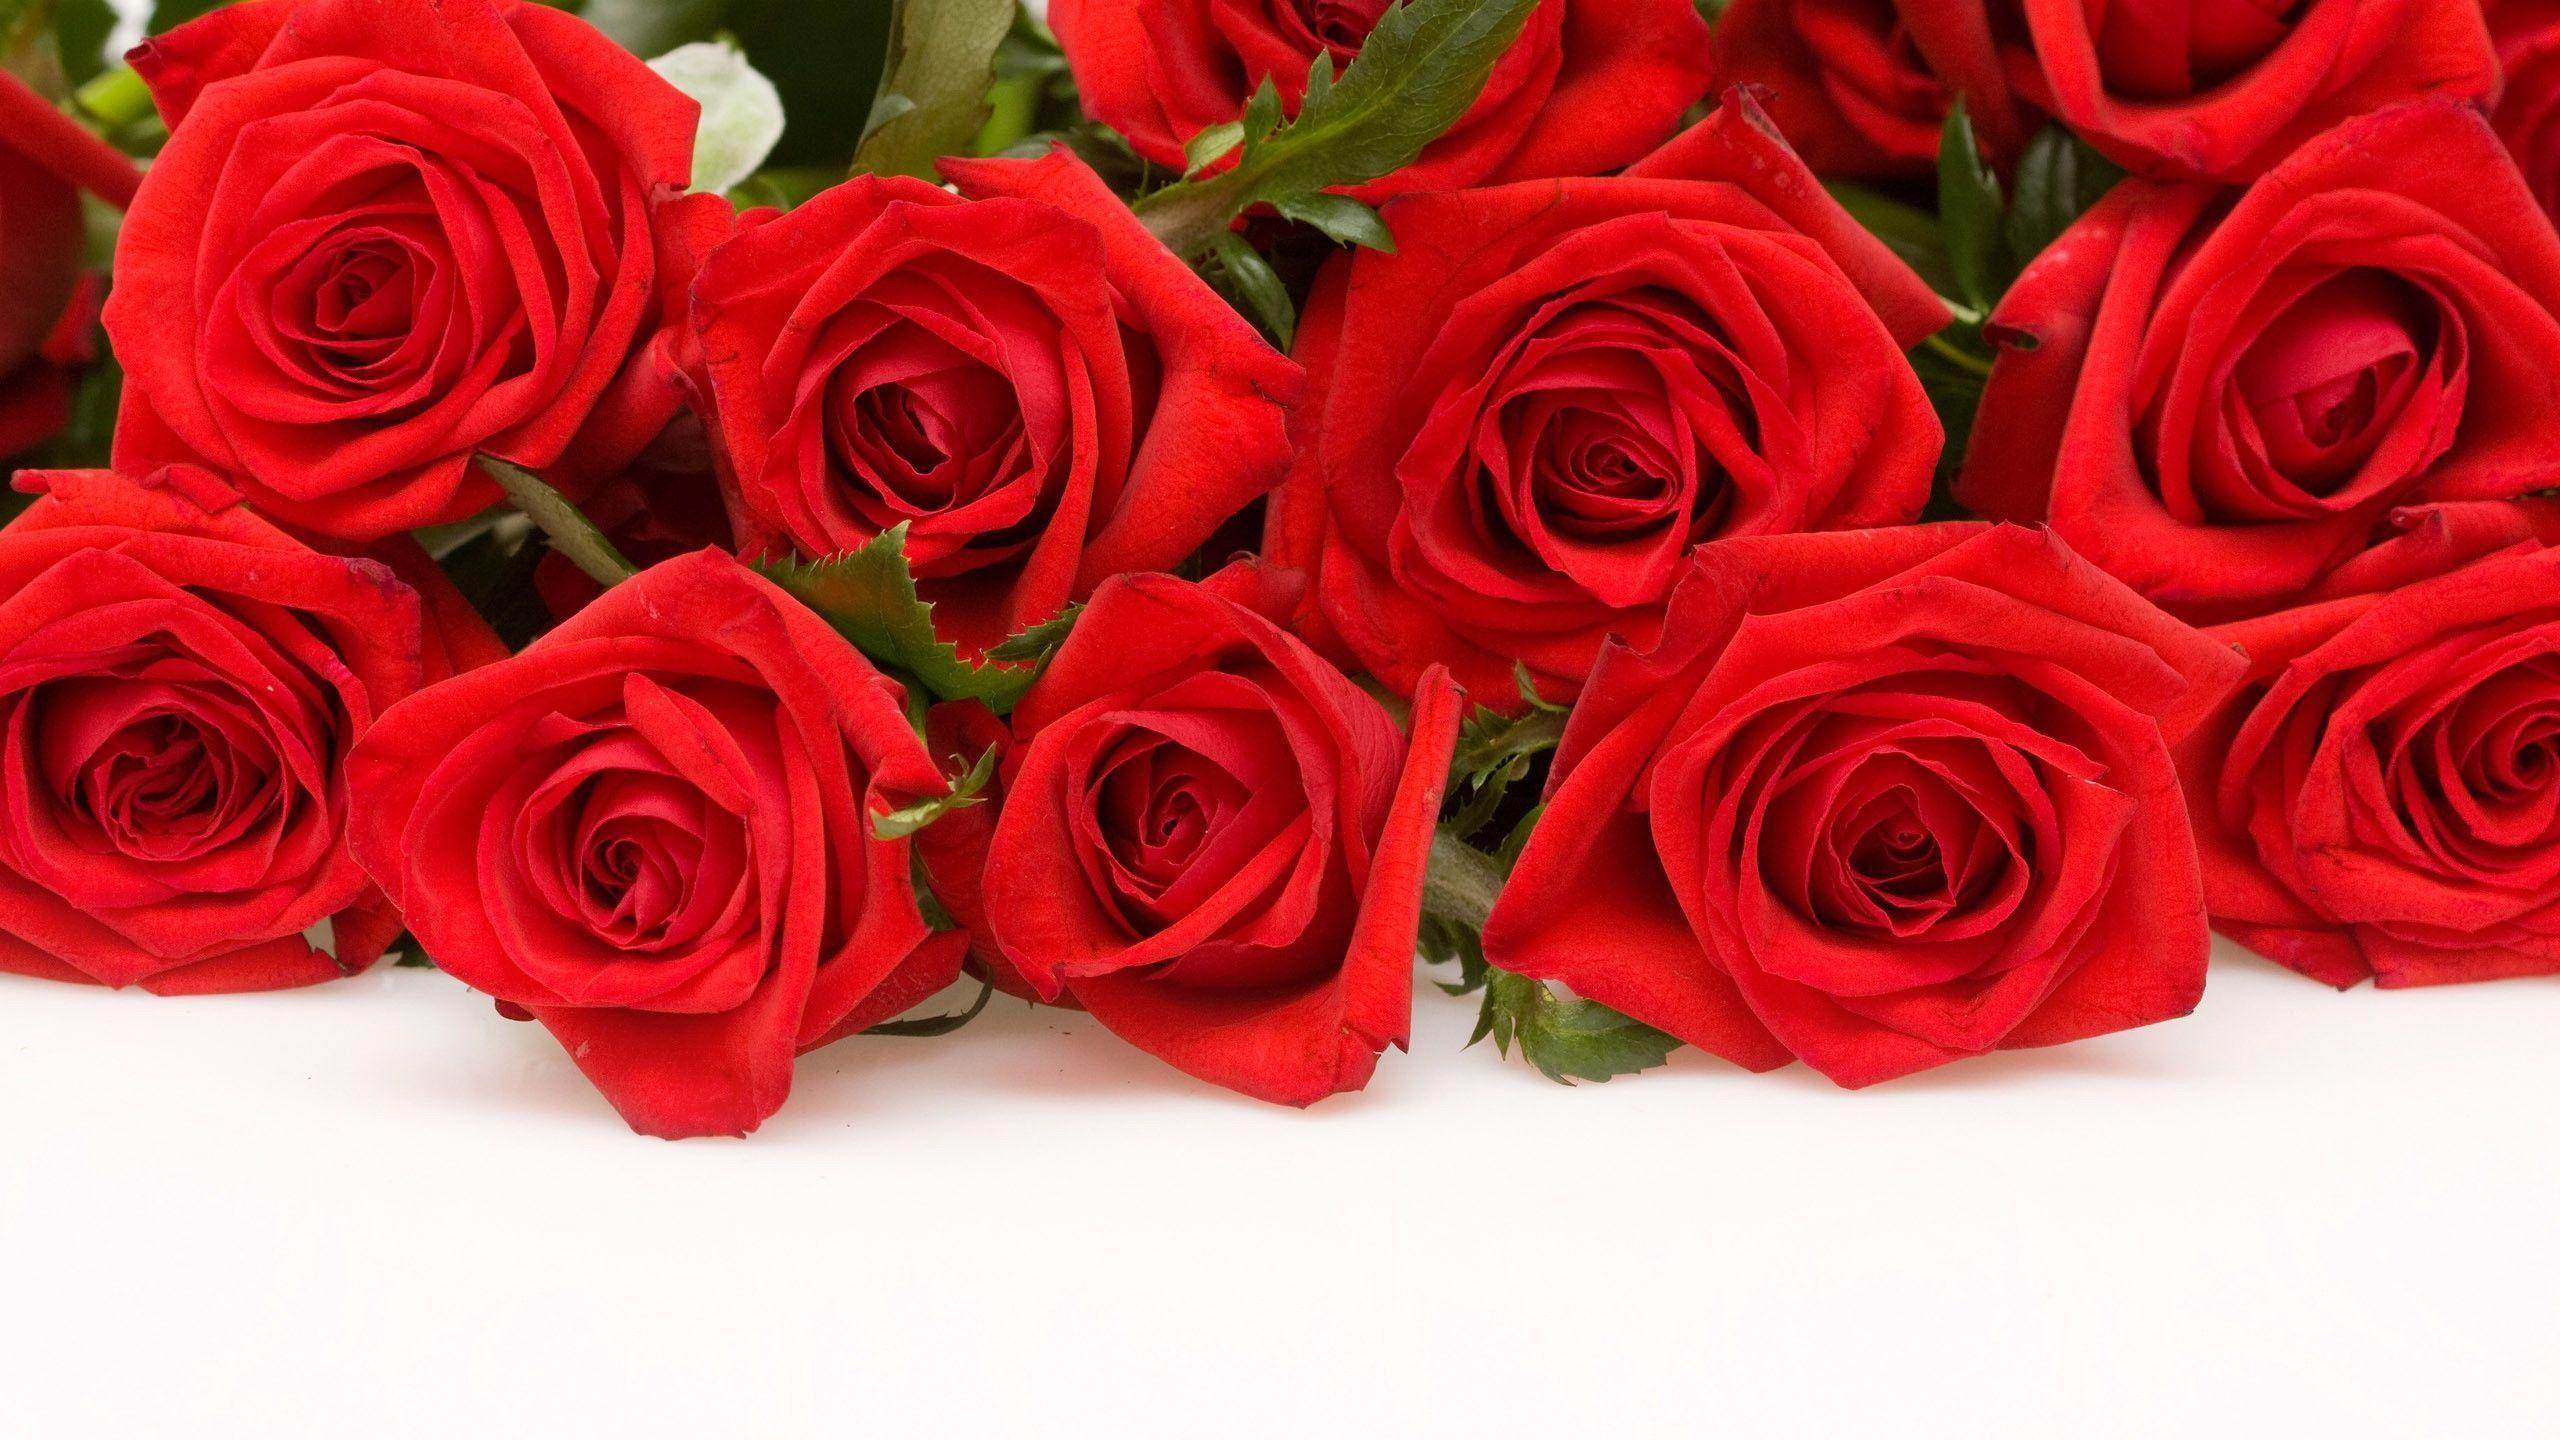 ROSES WALLPAPERS ALL COLOURS OF ROSES HD  WALLPAPERS CRAFT